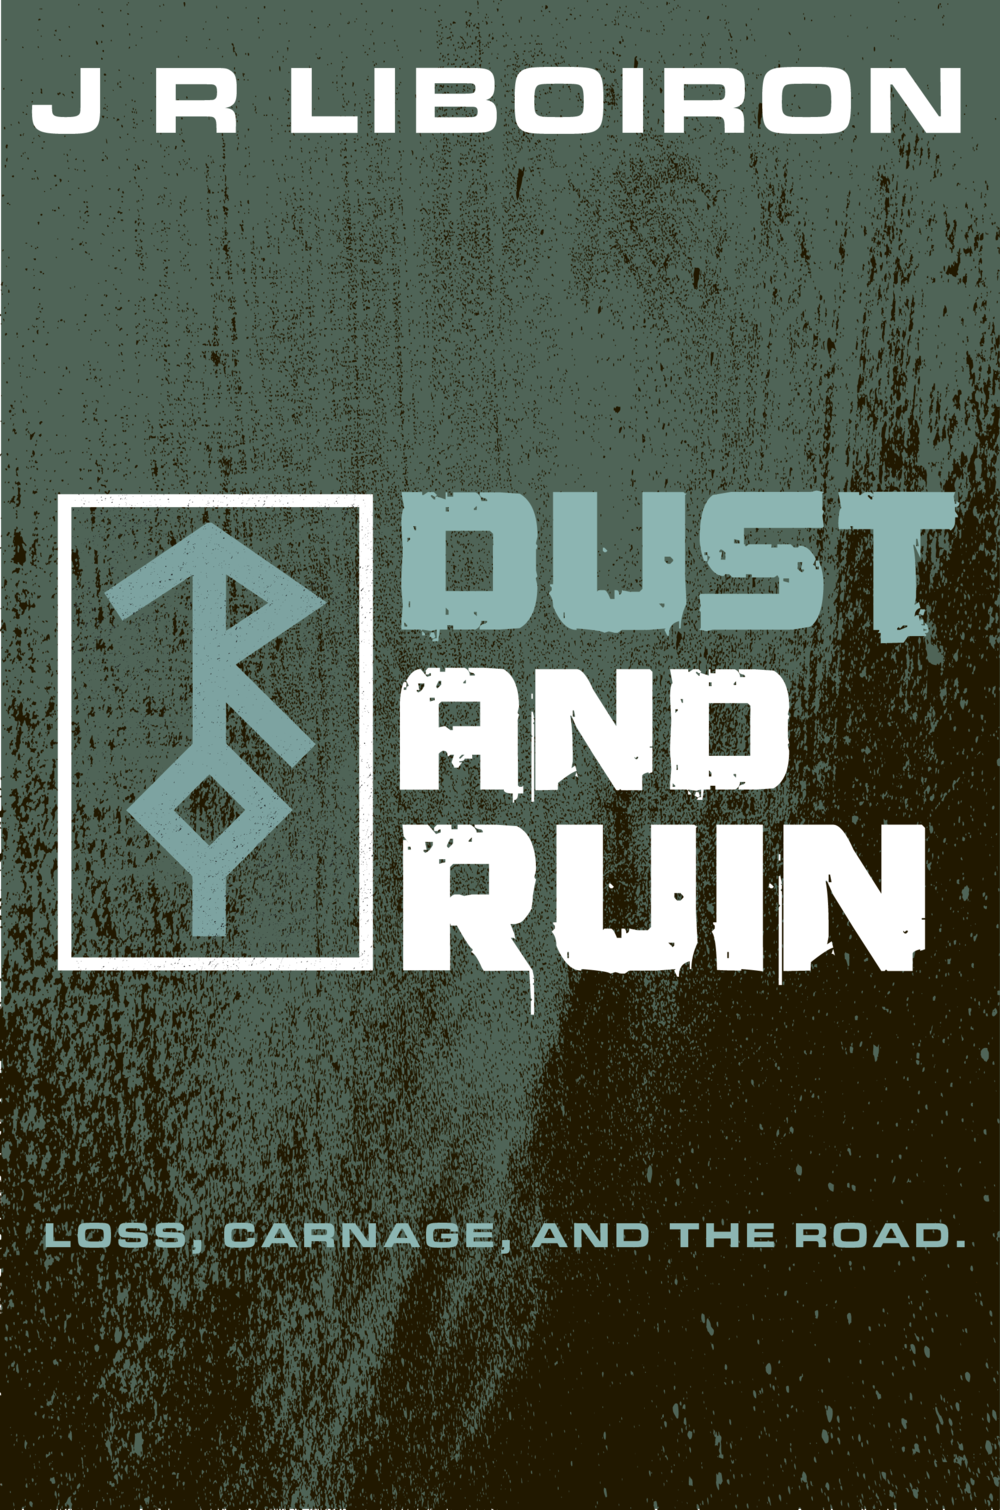 DUSTFRONT-01.png